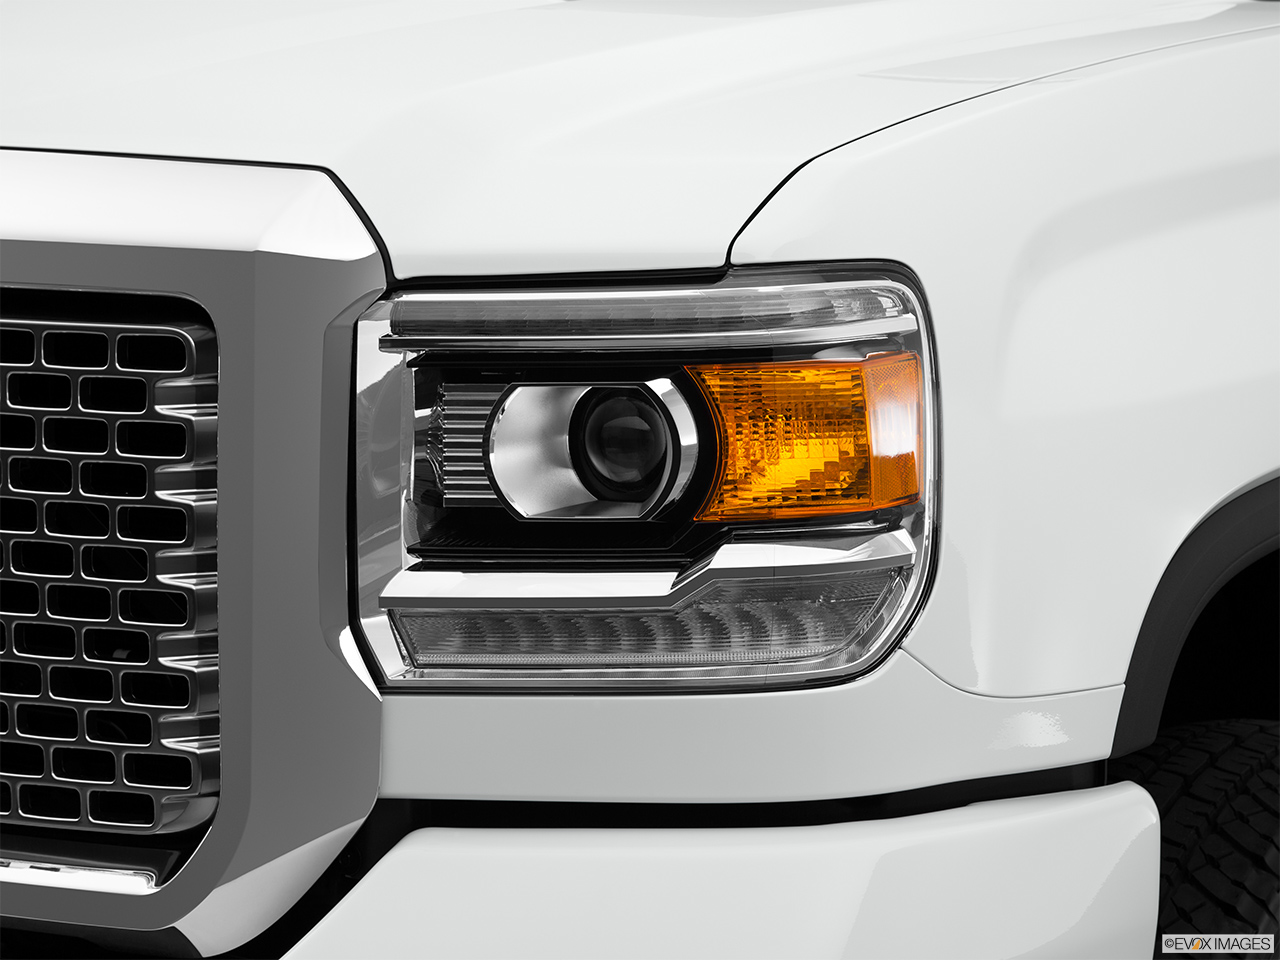 2015 gmc headlight complaints autos post. Black Bedroom Furniture Sets. Home Design Ideas